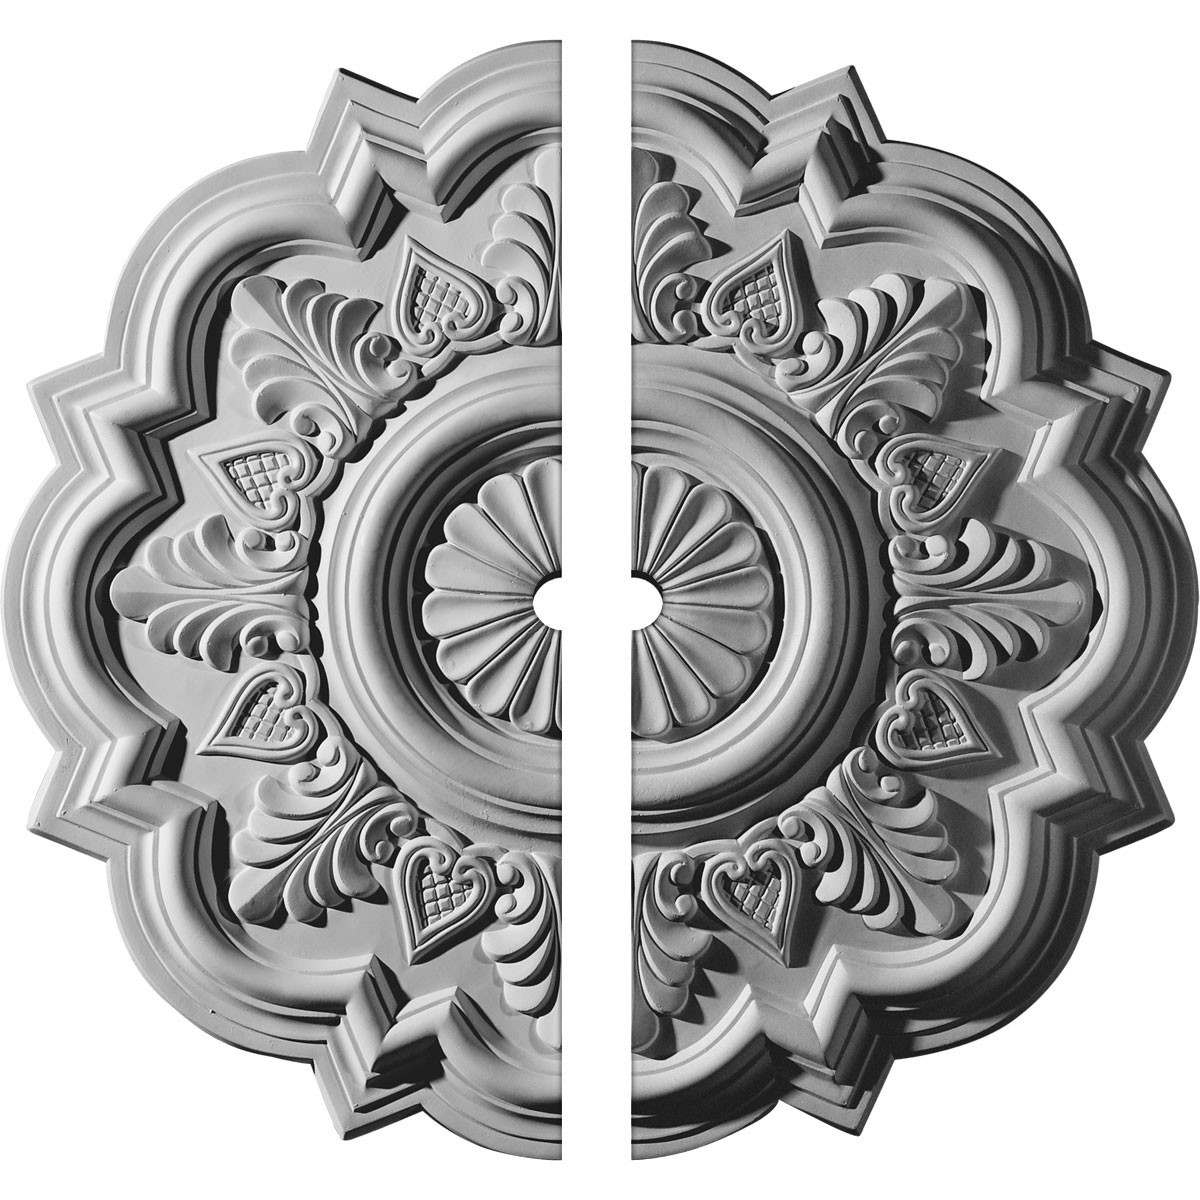 "EM-CM20DR2-01500 - 20 1/4""OD x 1 1/2""ID x 1 1/2""P Deria Ceiling Medallion, Two Piece (Fits Canopies up to 6"")"